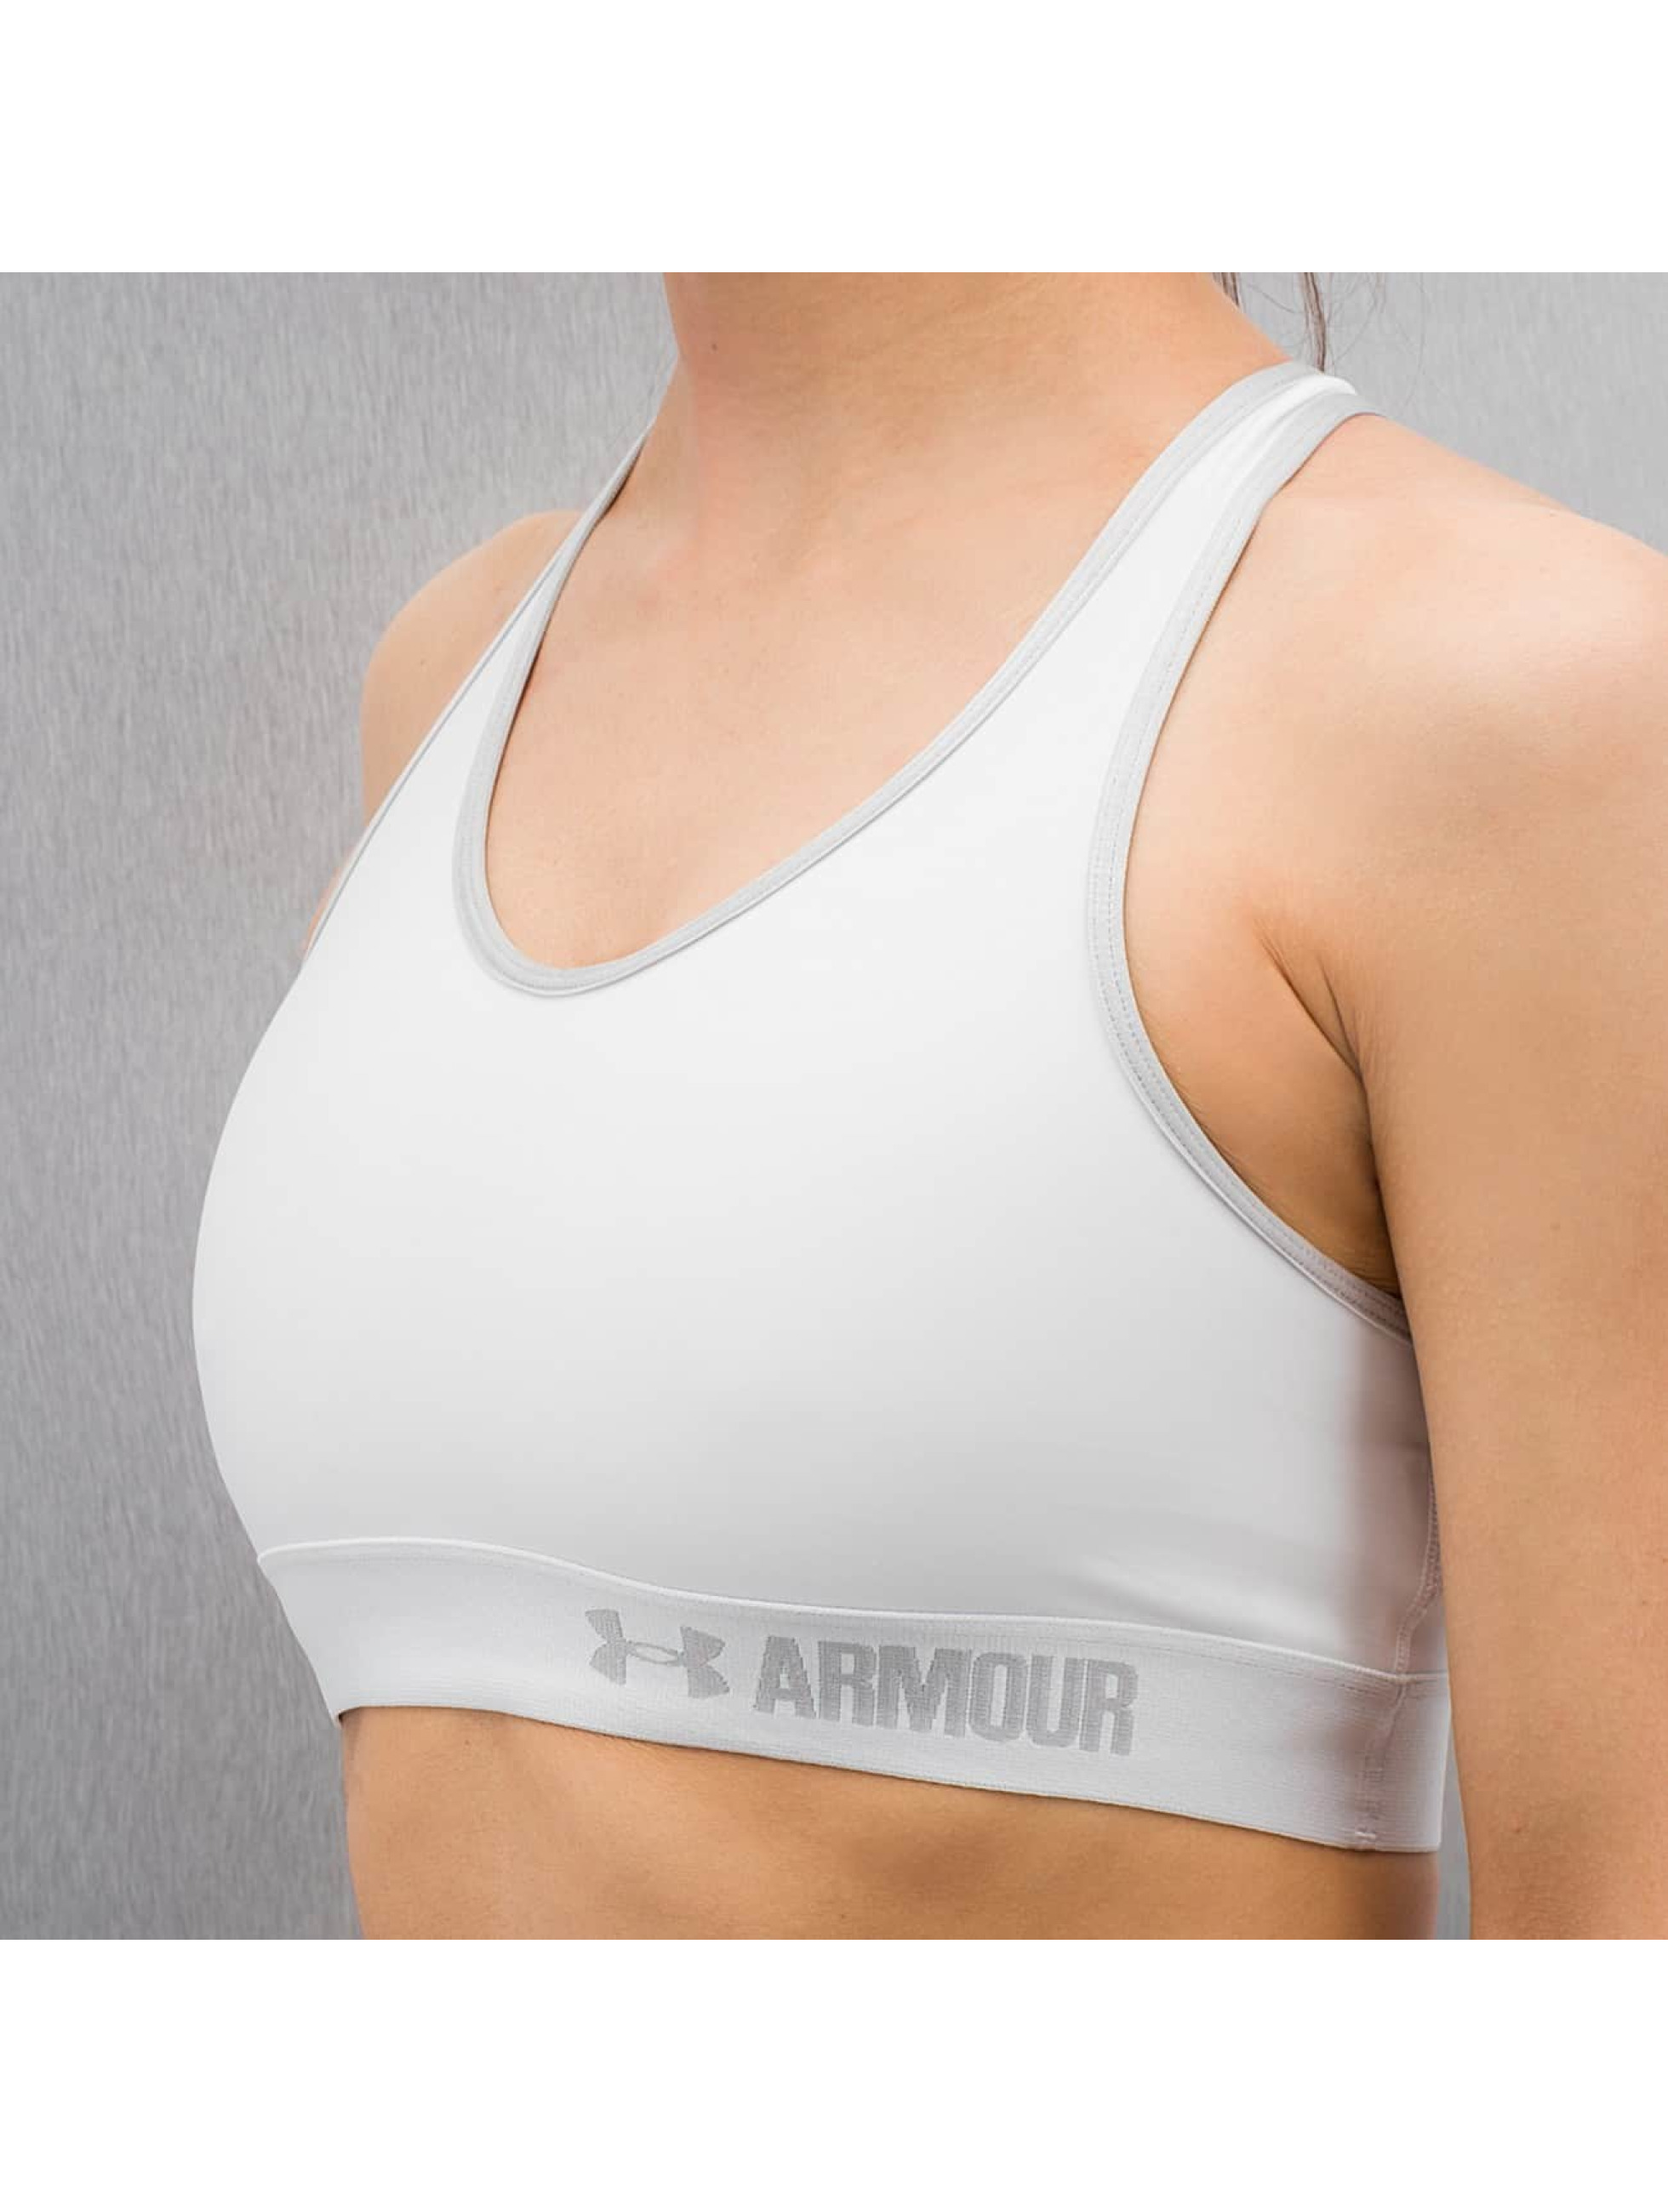 Under Armour Lingerie Armour Mid Solid blanc